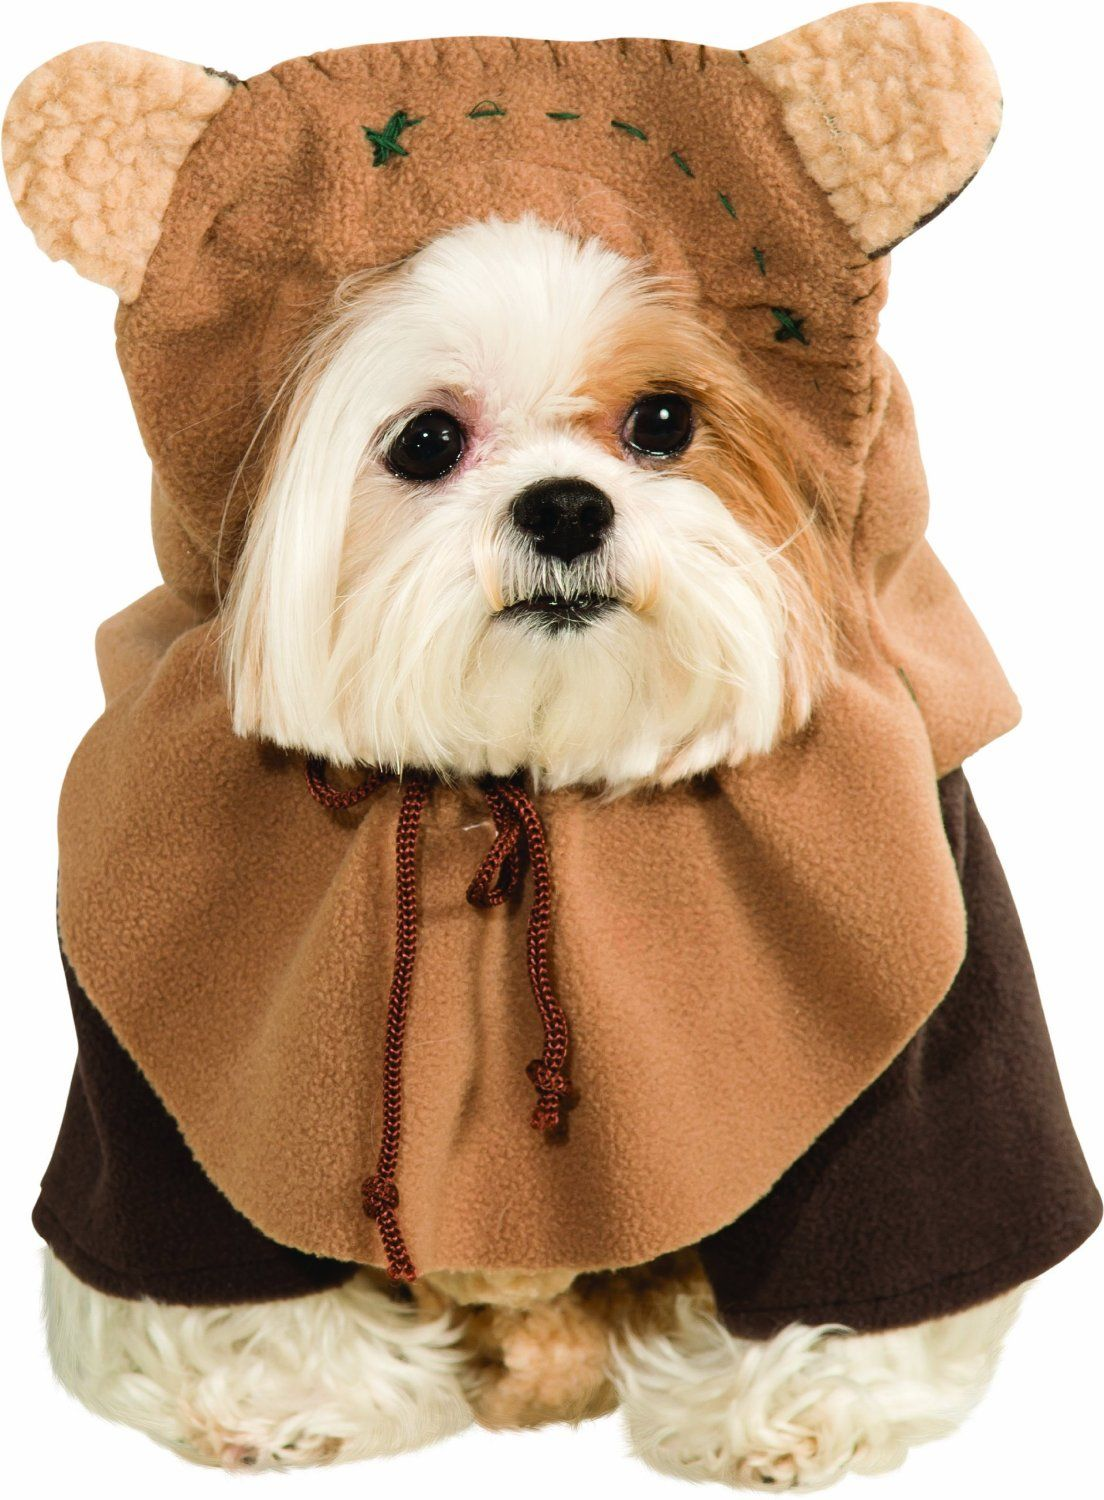 Ewok Dog Costume Amazon Com Rubies Costume Star Wars Collection Pet Costume Medium Ewo Star Wars Pet Costumes Pet Halloween Costumes Pet Costumes For Dogs